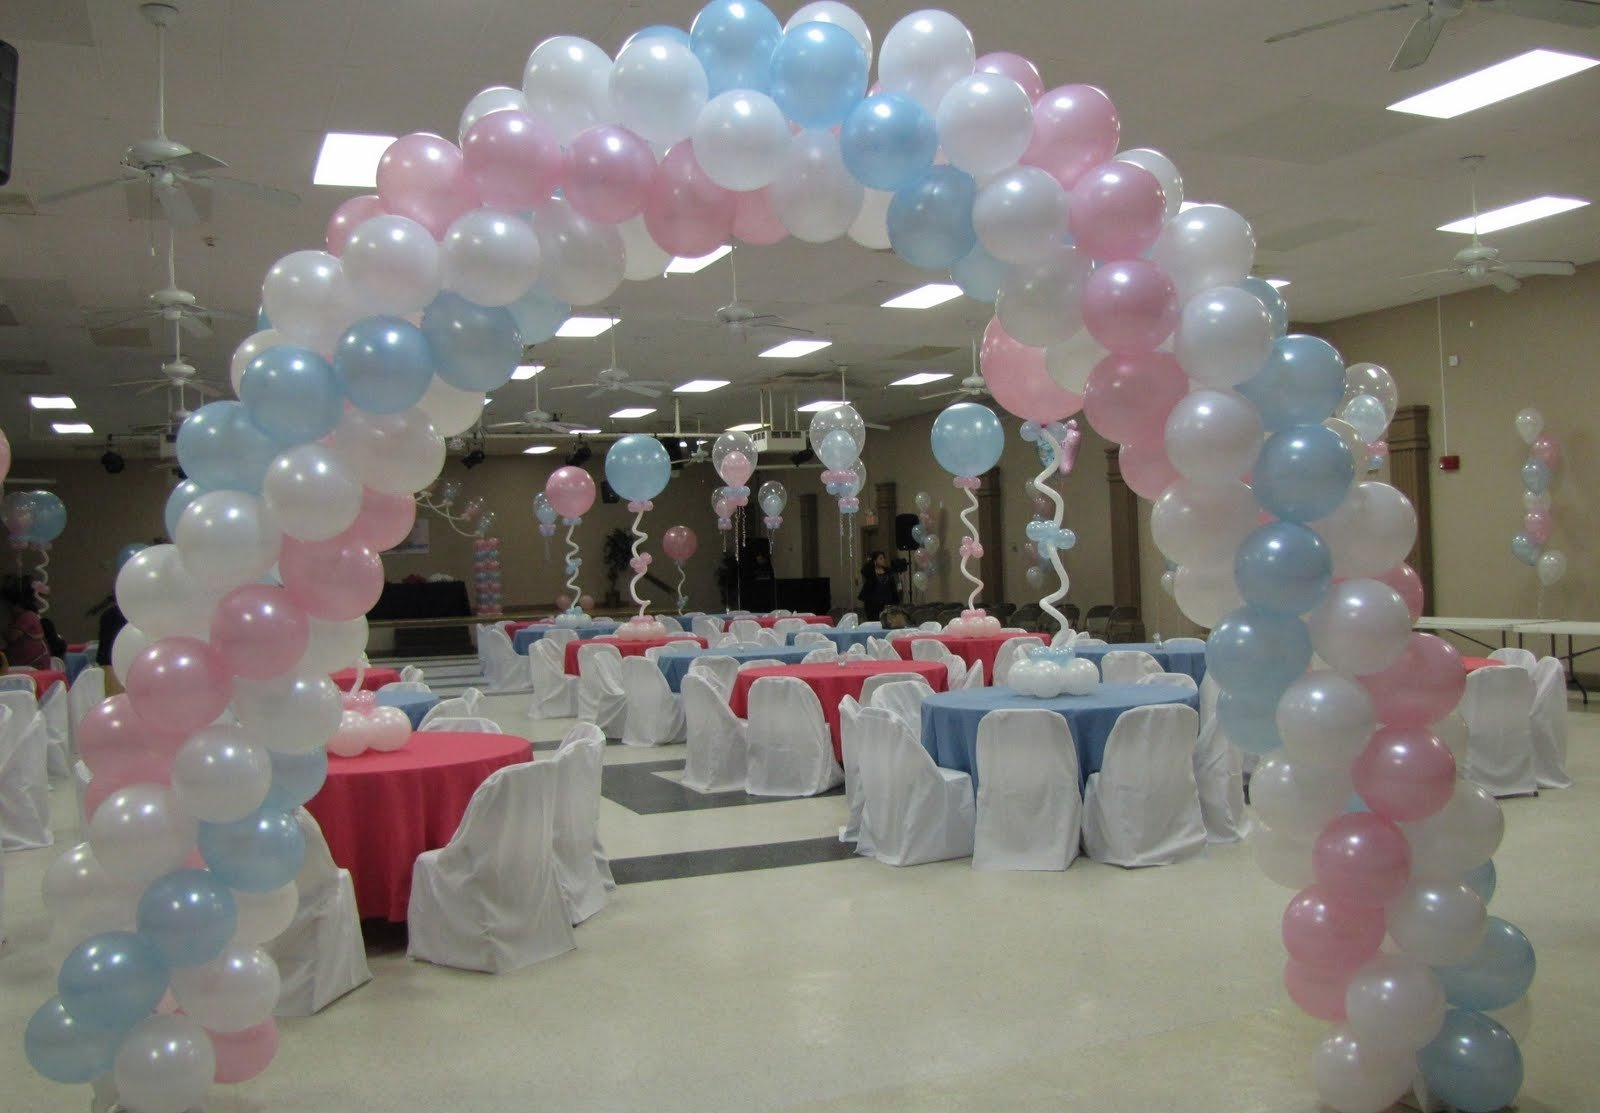 10 Nice Baby Shower Balloon Decoration Ideas baby shower balloon decor party favors ideas tierra este 69395 2 2020